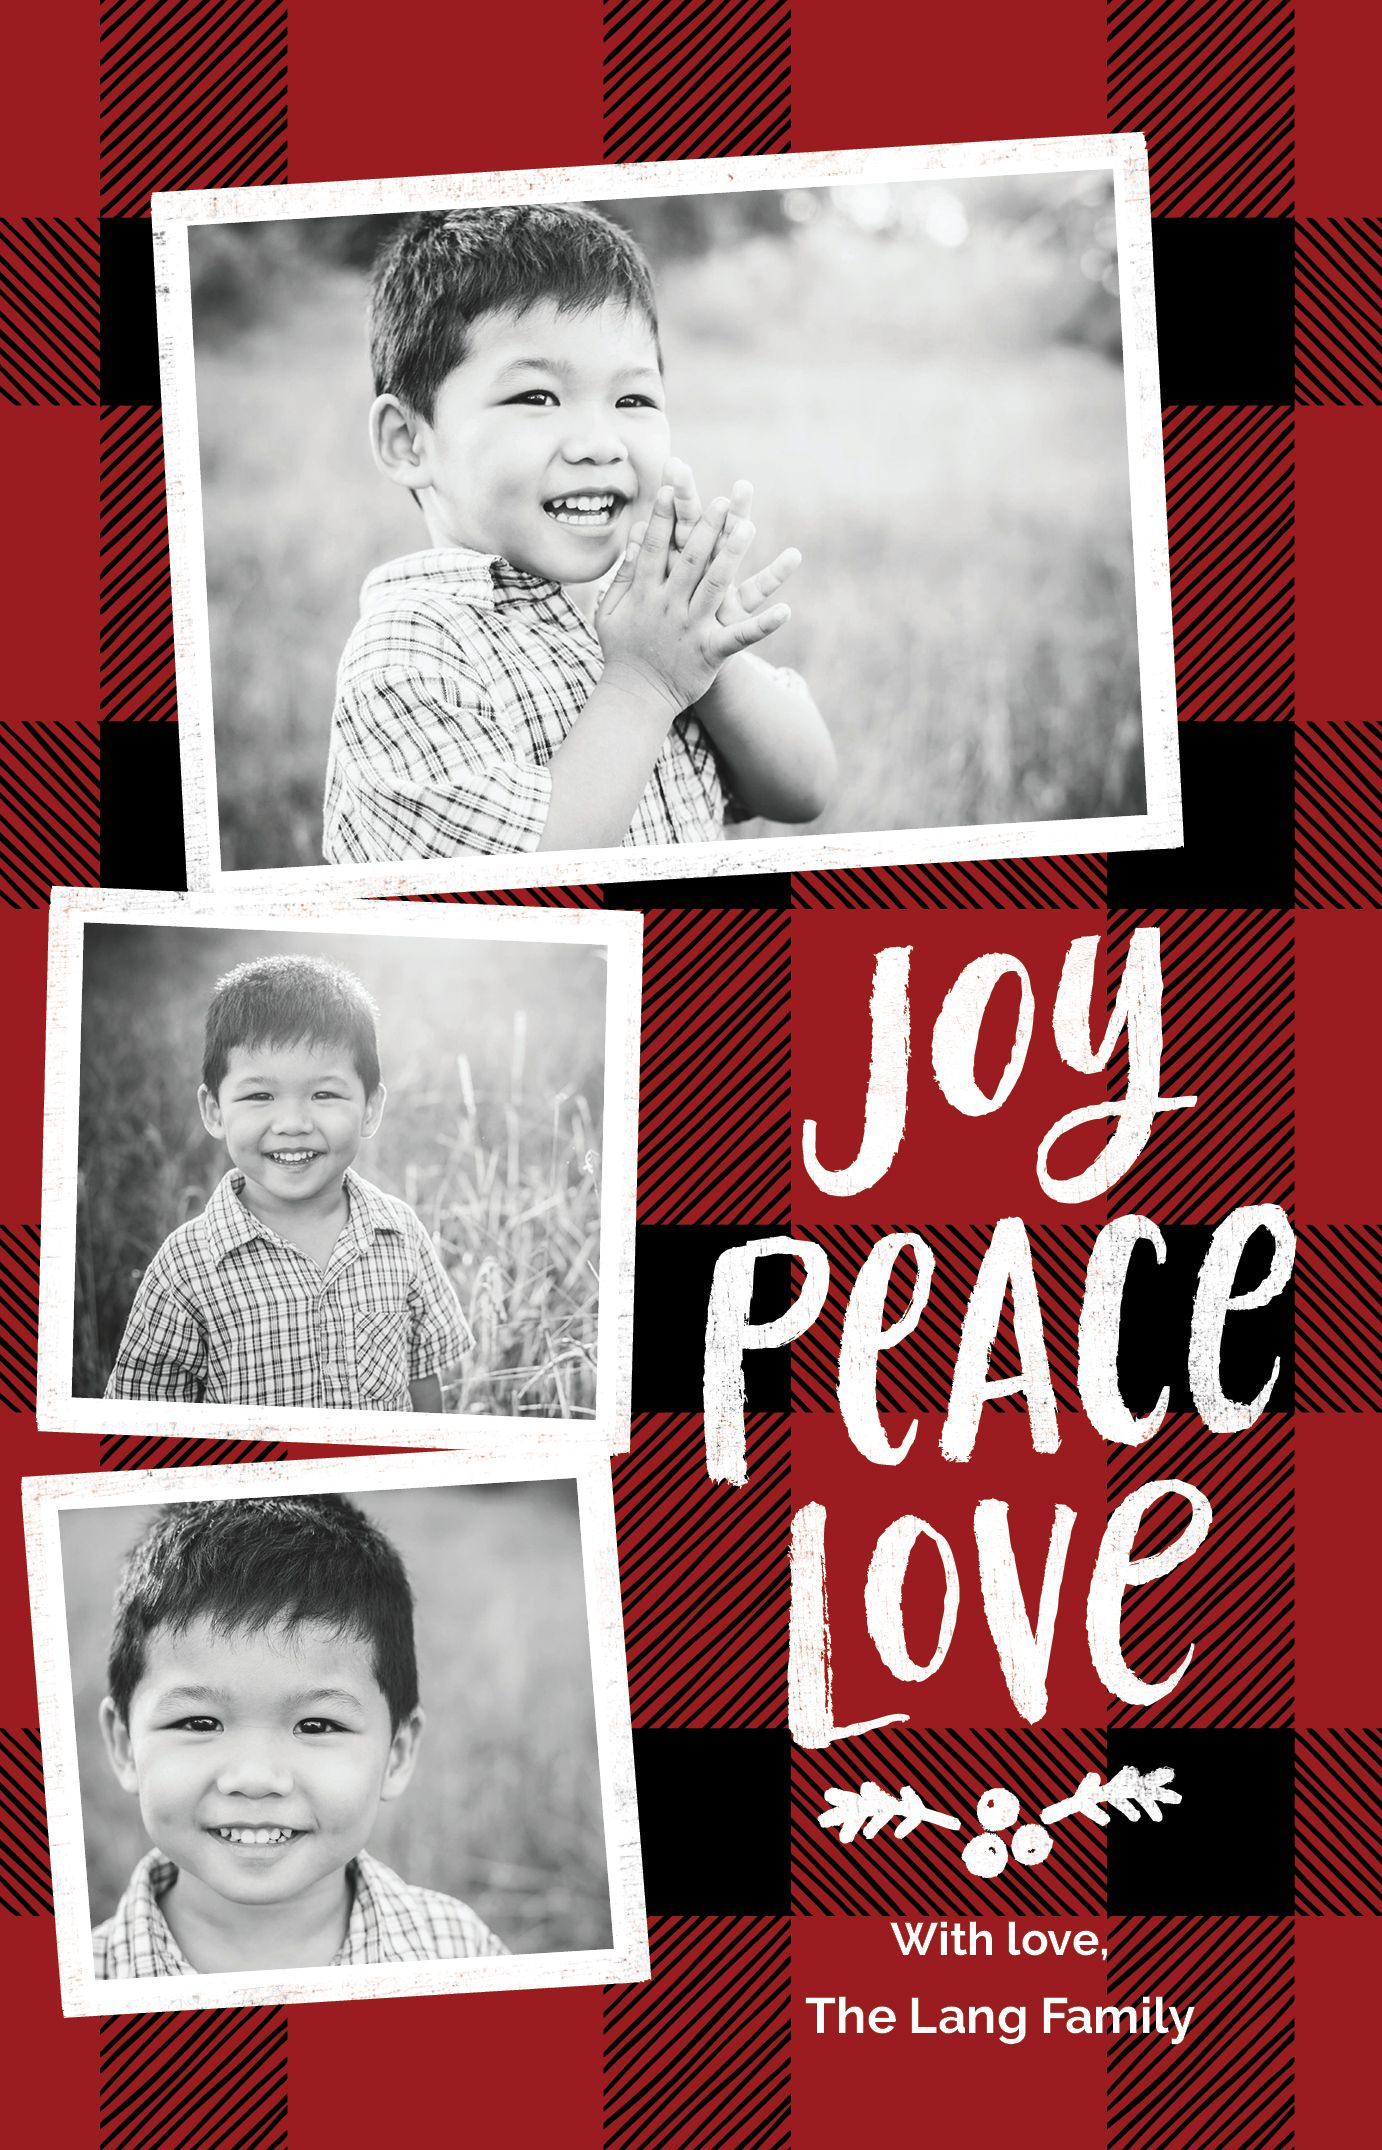 Pin By Vistaprint On Plaid Christmas Card Ideas With Images